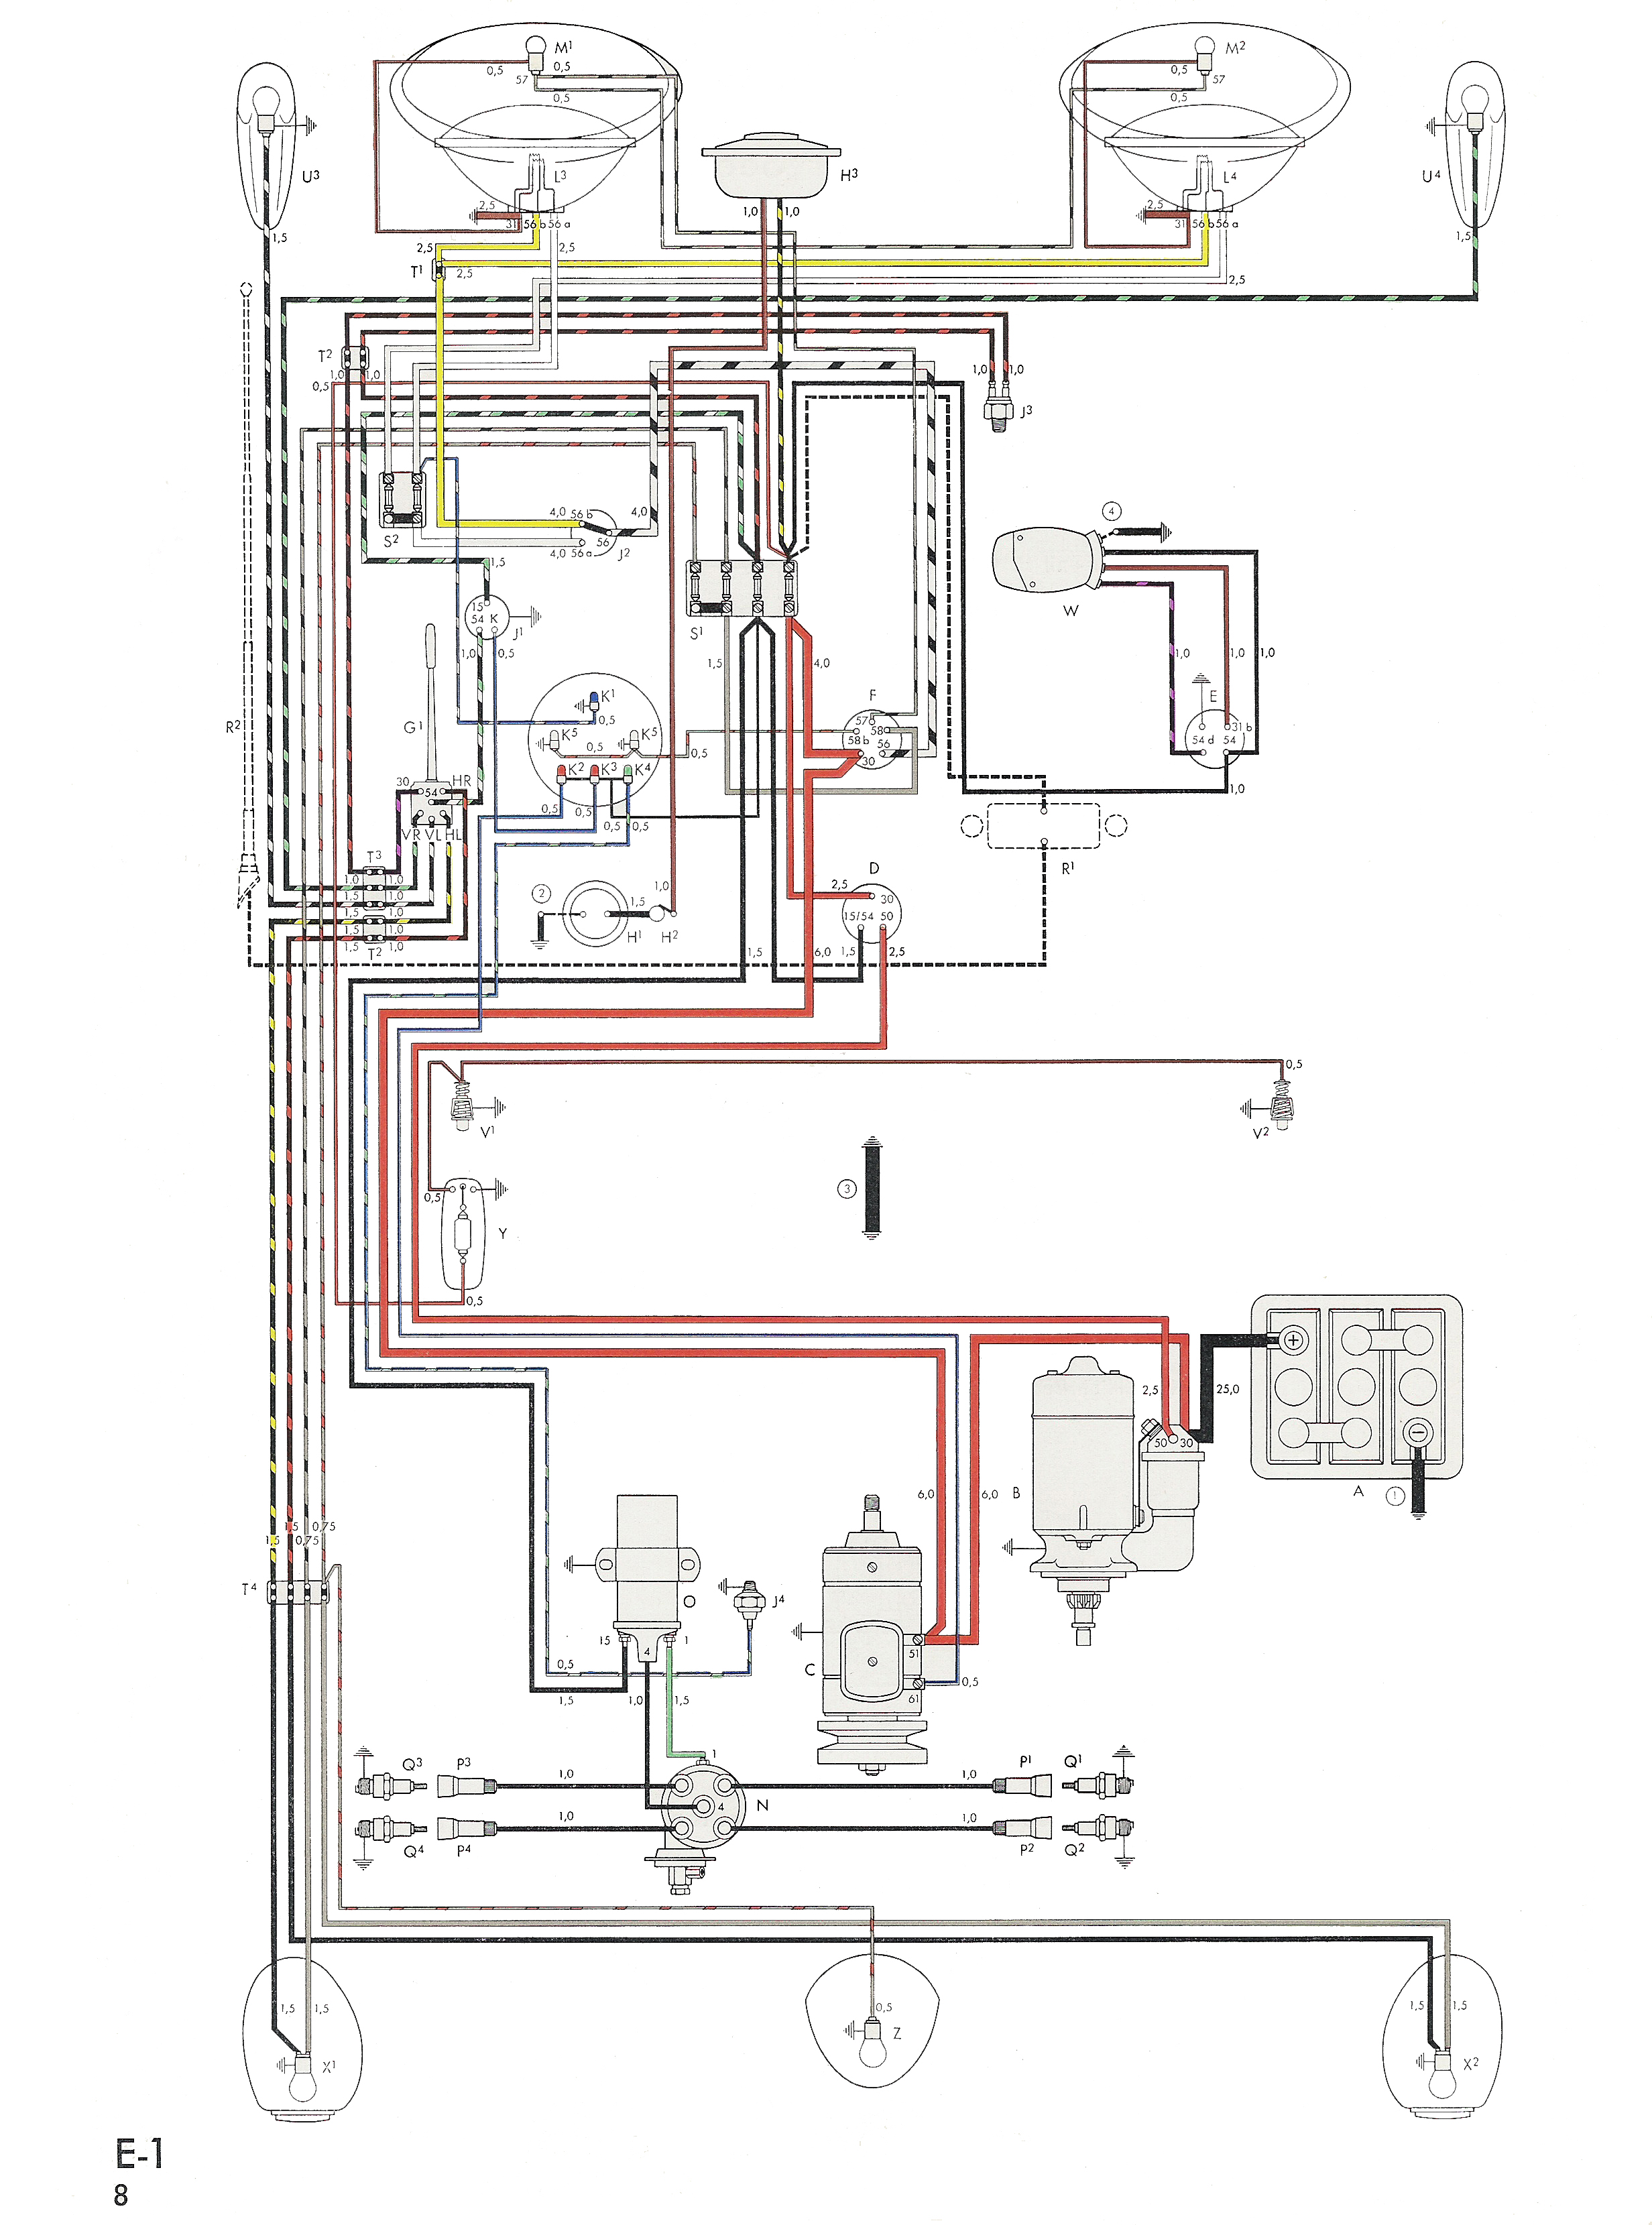 bug_58_USA_300dpi thesamba com type 1 wiring diagrams vw engine wiring diagram at aneh.co